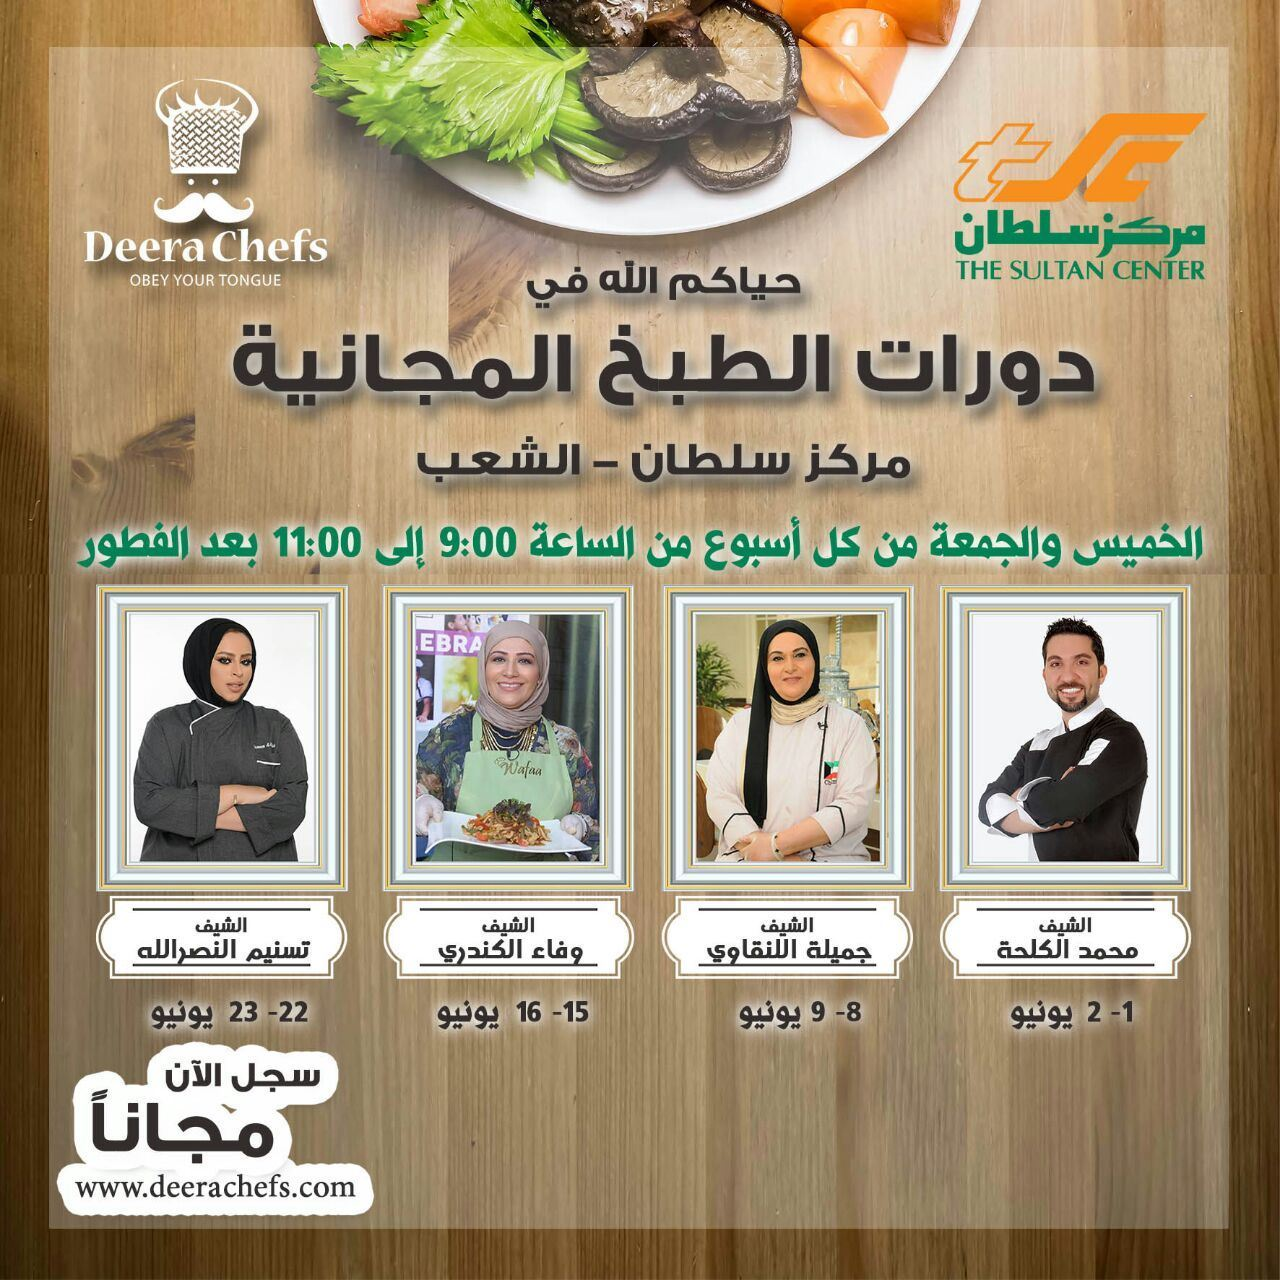 The Sultan Center Launches Cooking Sessions with Deera Chefs